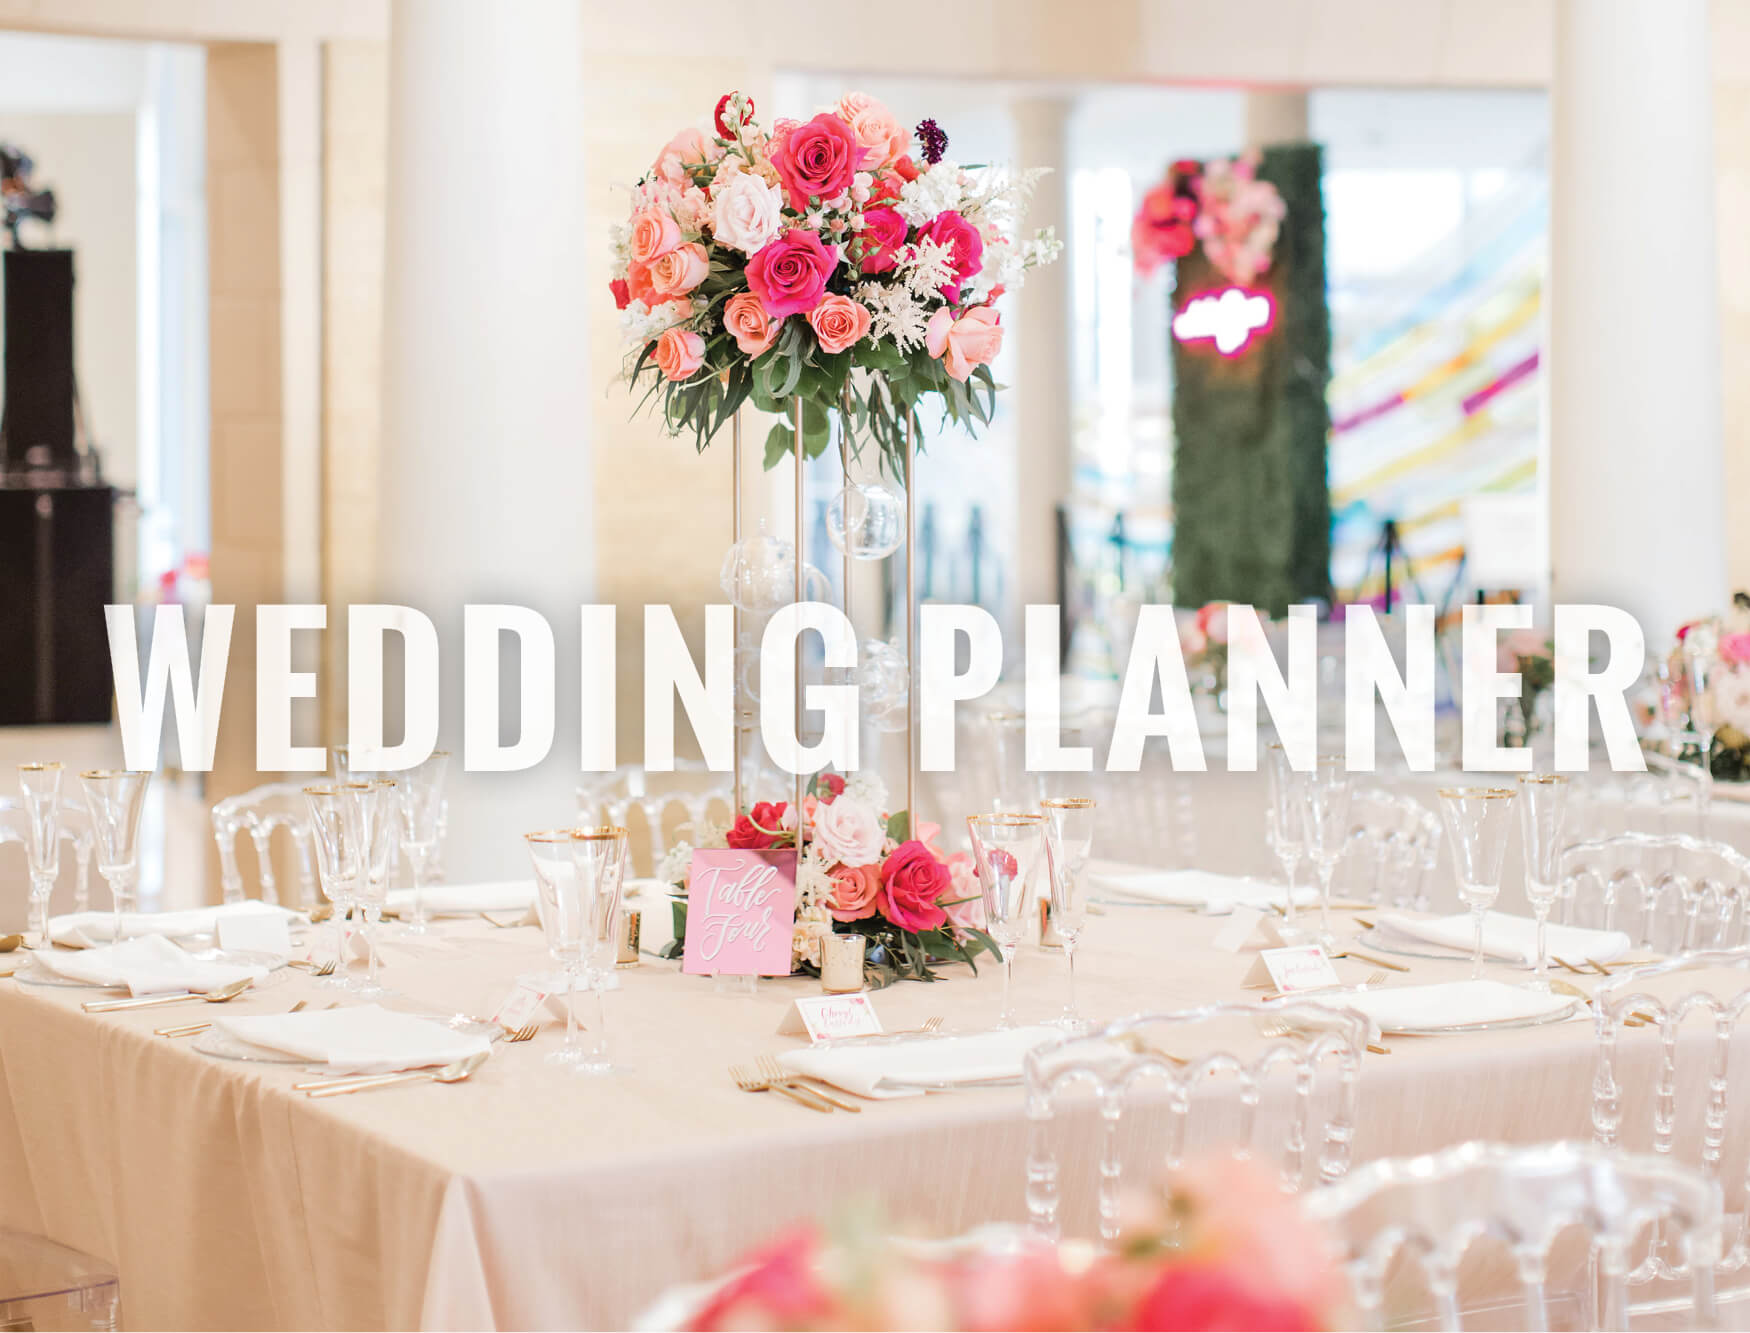 WeddingPlanner_category